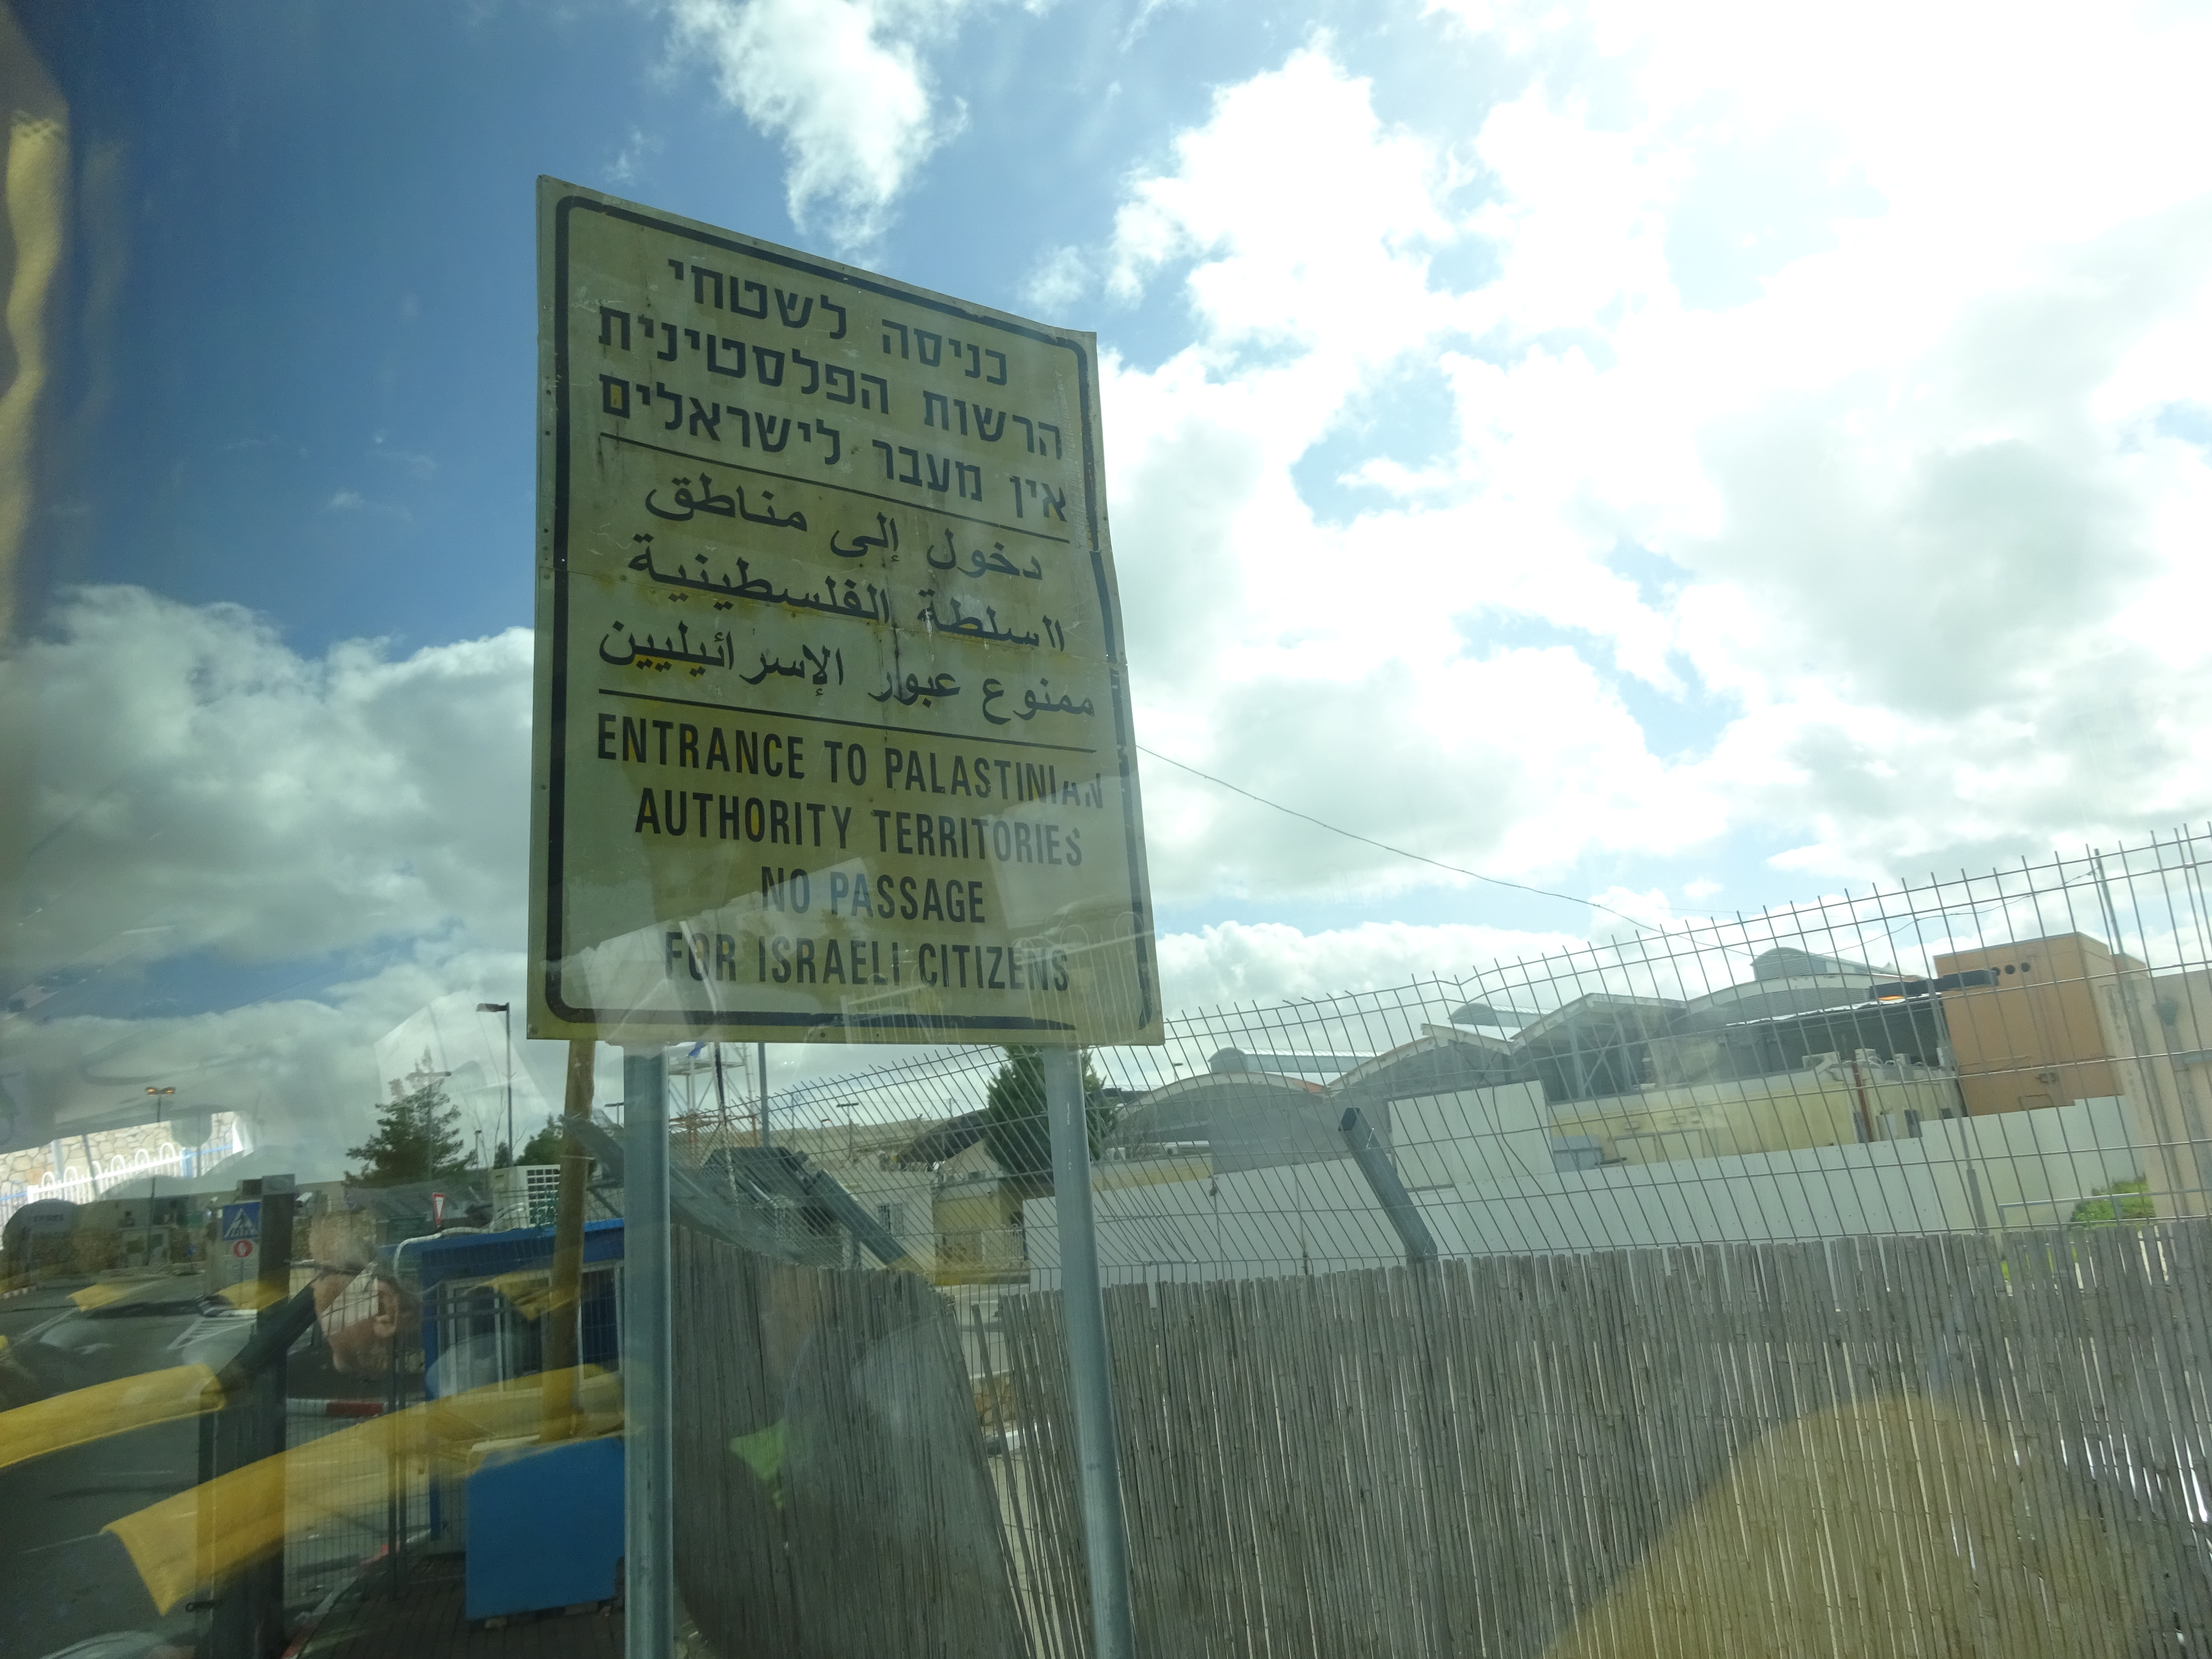 Typical signage at border of A